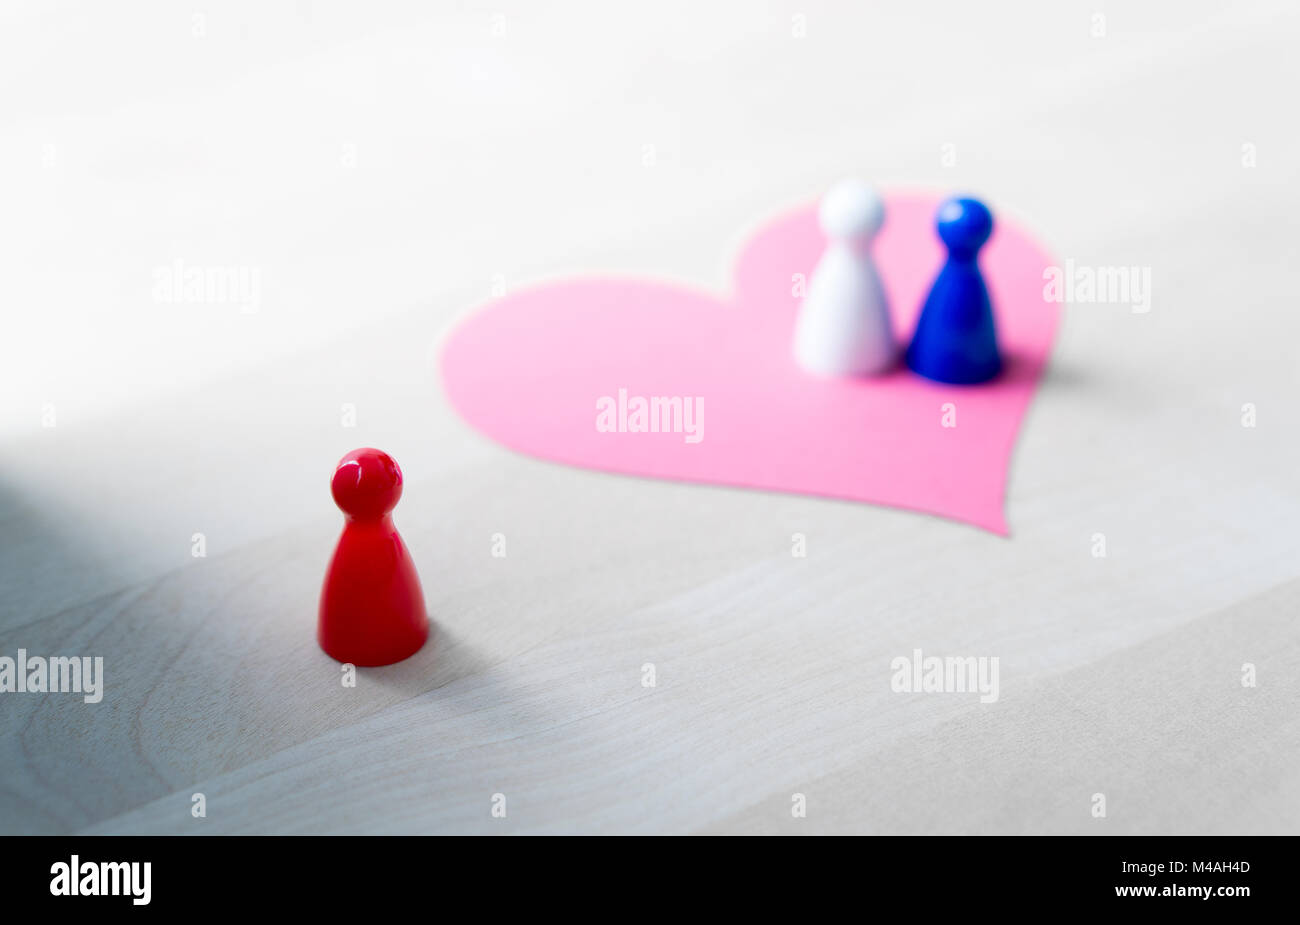 Having affair, infidelity or cheating concept. Love triangle or being third wheel. Board game pawns and paper heart - Stock Image